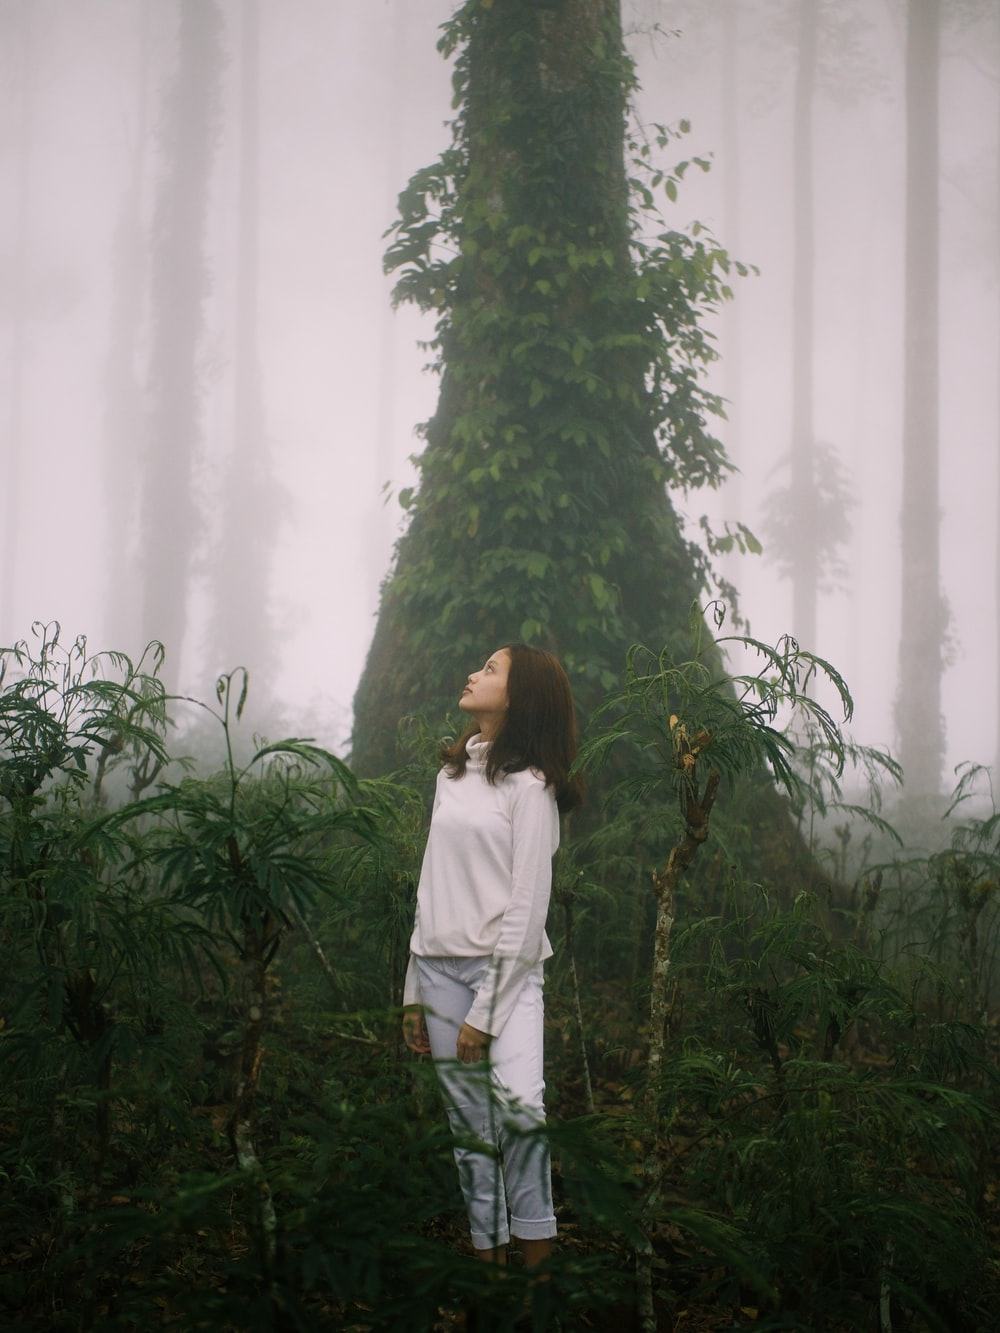 woman in white long sleeve shirt standing beside green tree during daytime